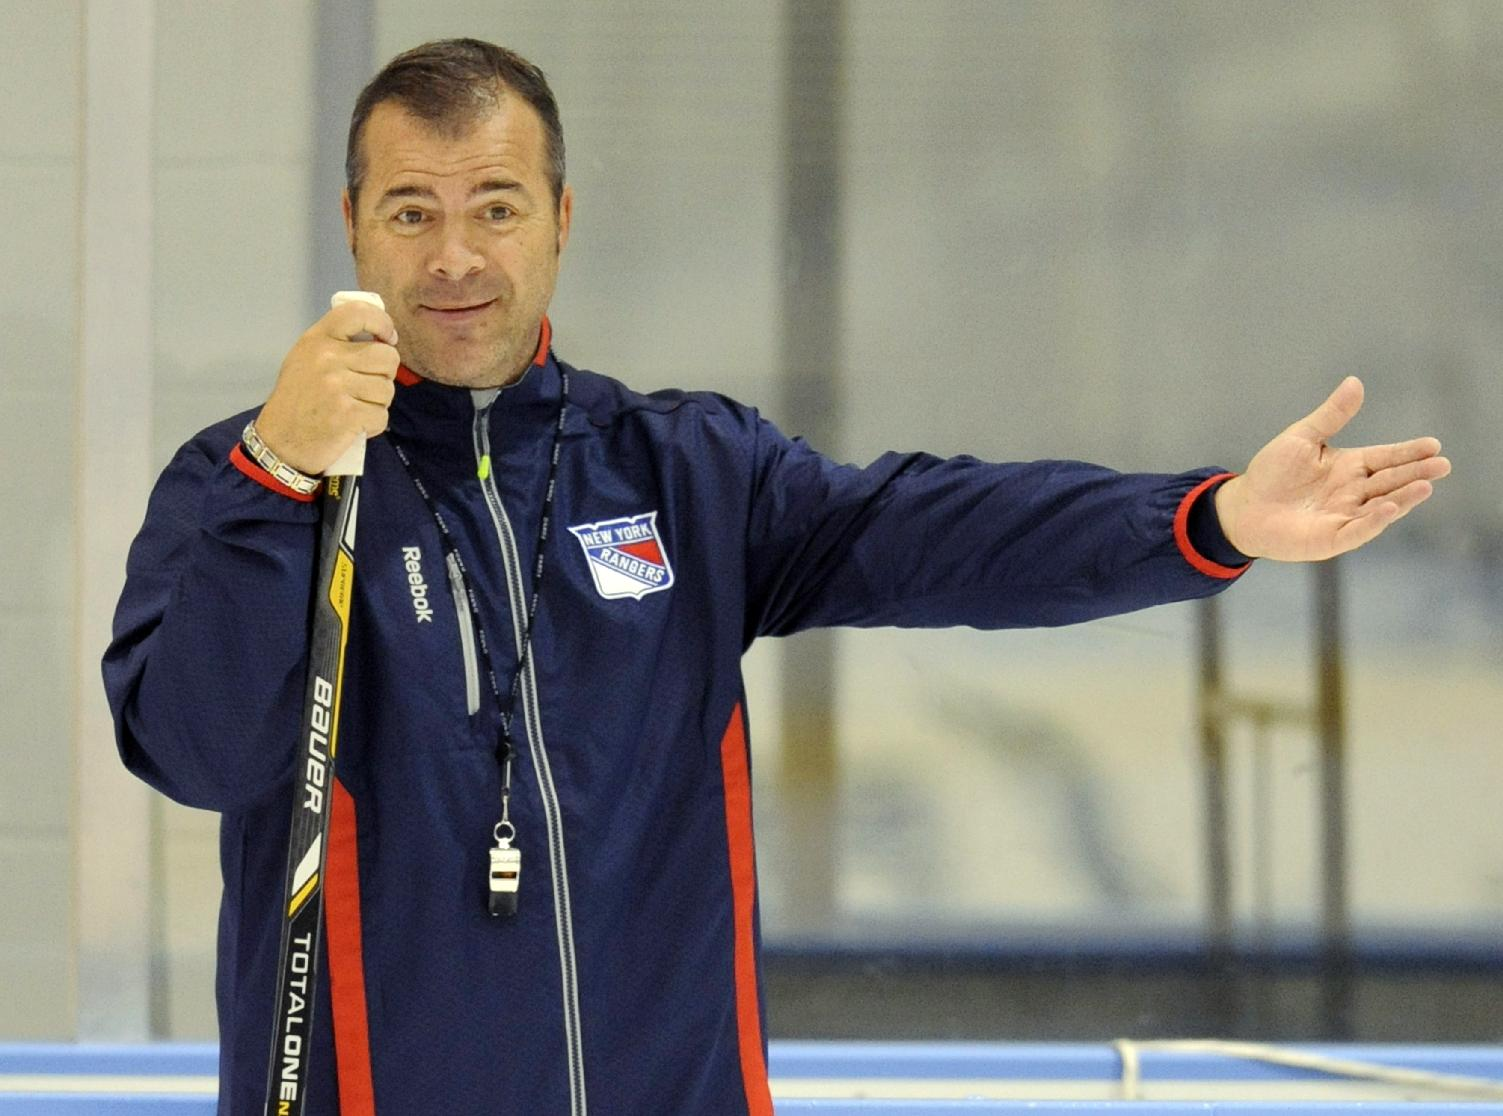 New York Rangers coach Alain Vigneault gestures during NHL hockey training camp Friday, Sept. 13, 2013, in Greenburgh N.Y